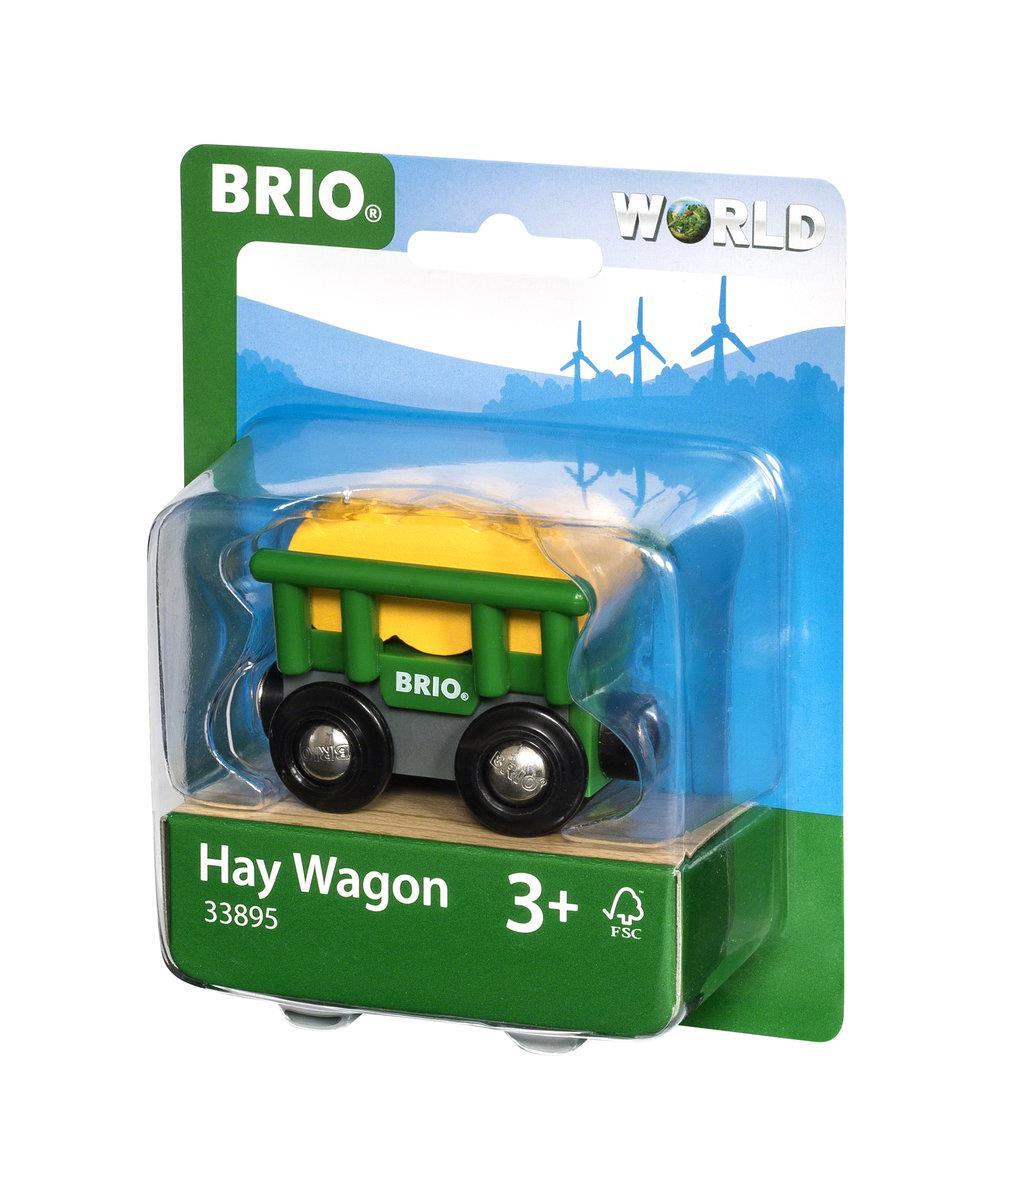 BRIO World Heuwagen mit Kippfunktion